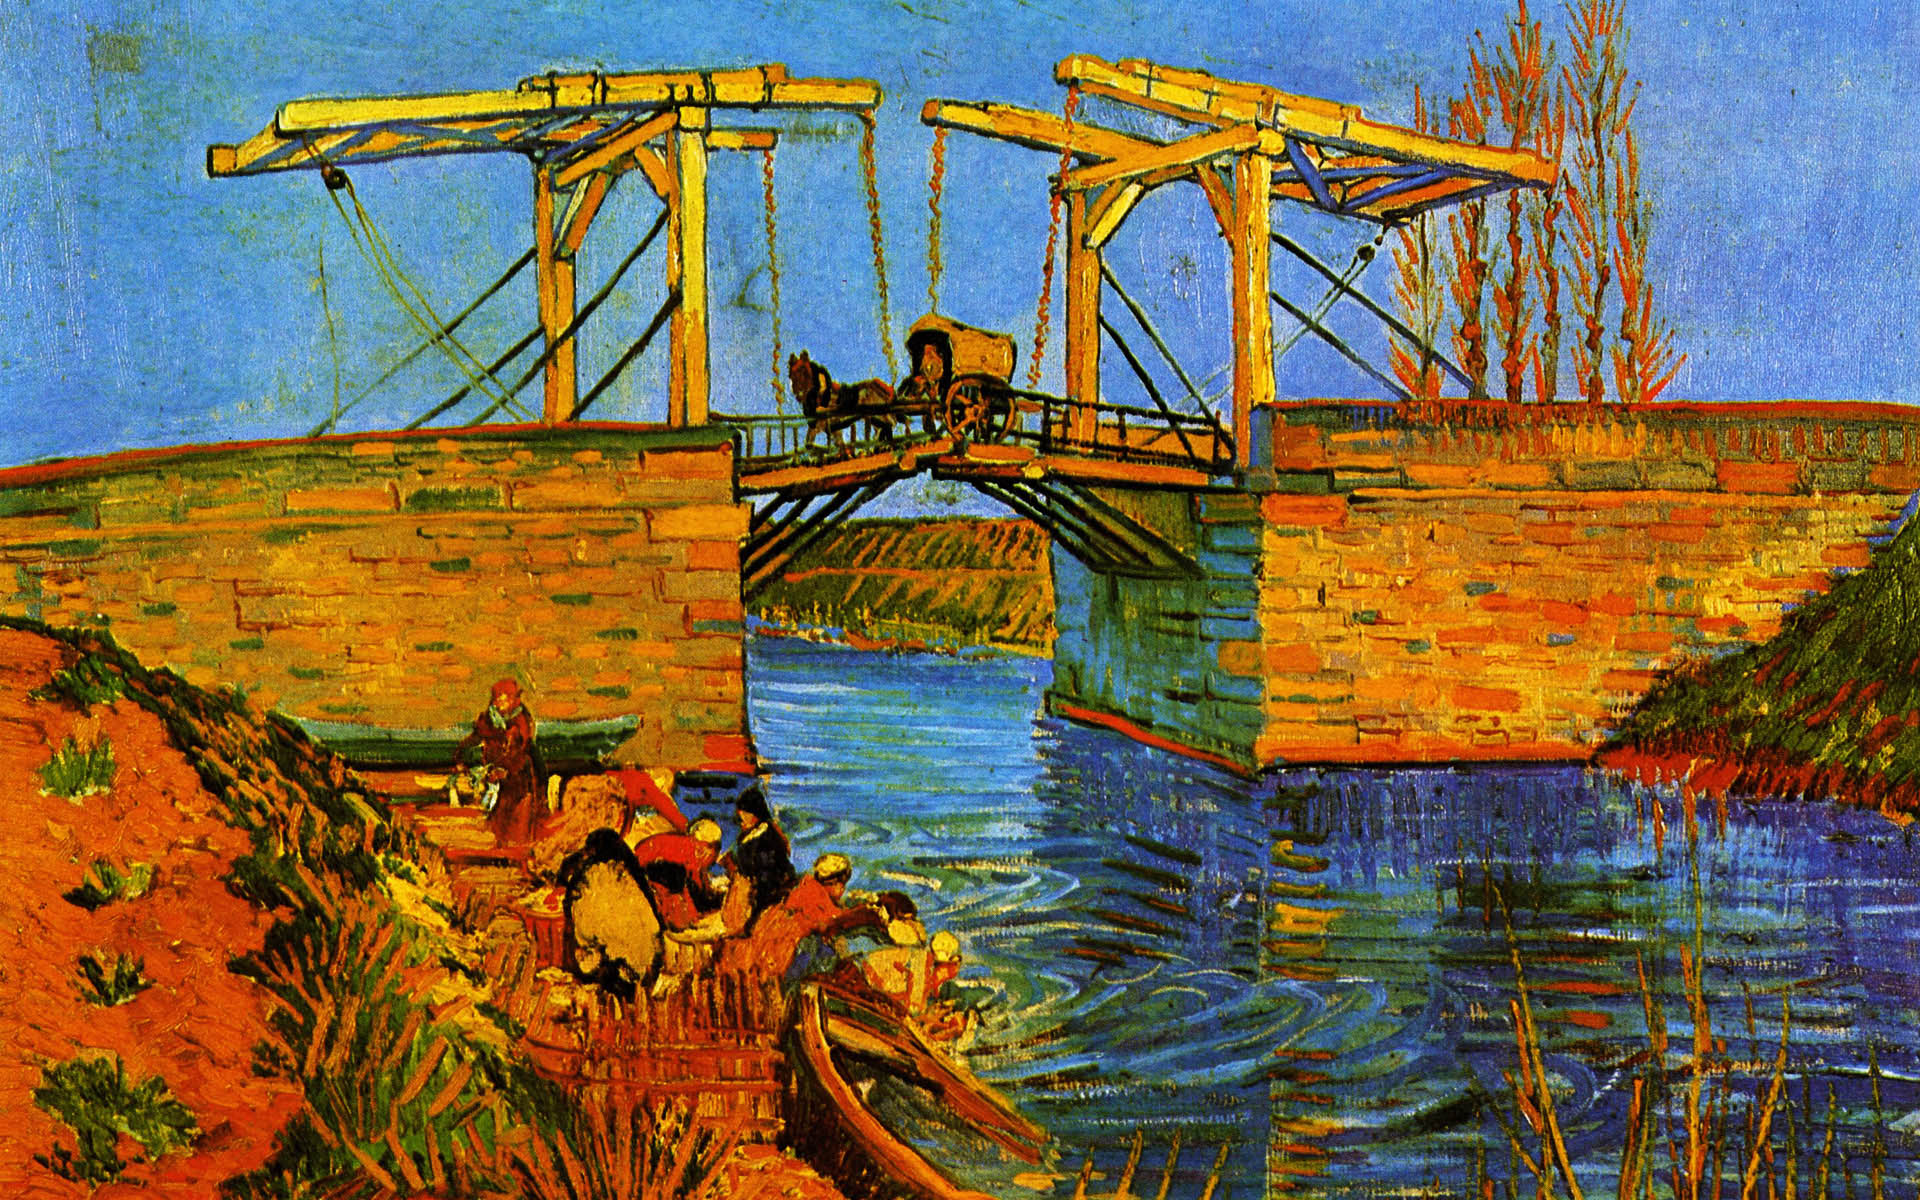 Bridge van gogh clipart #7